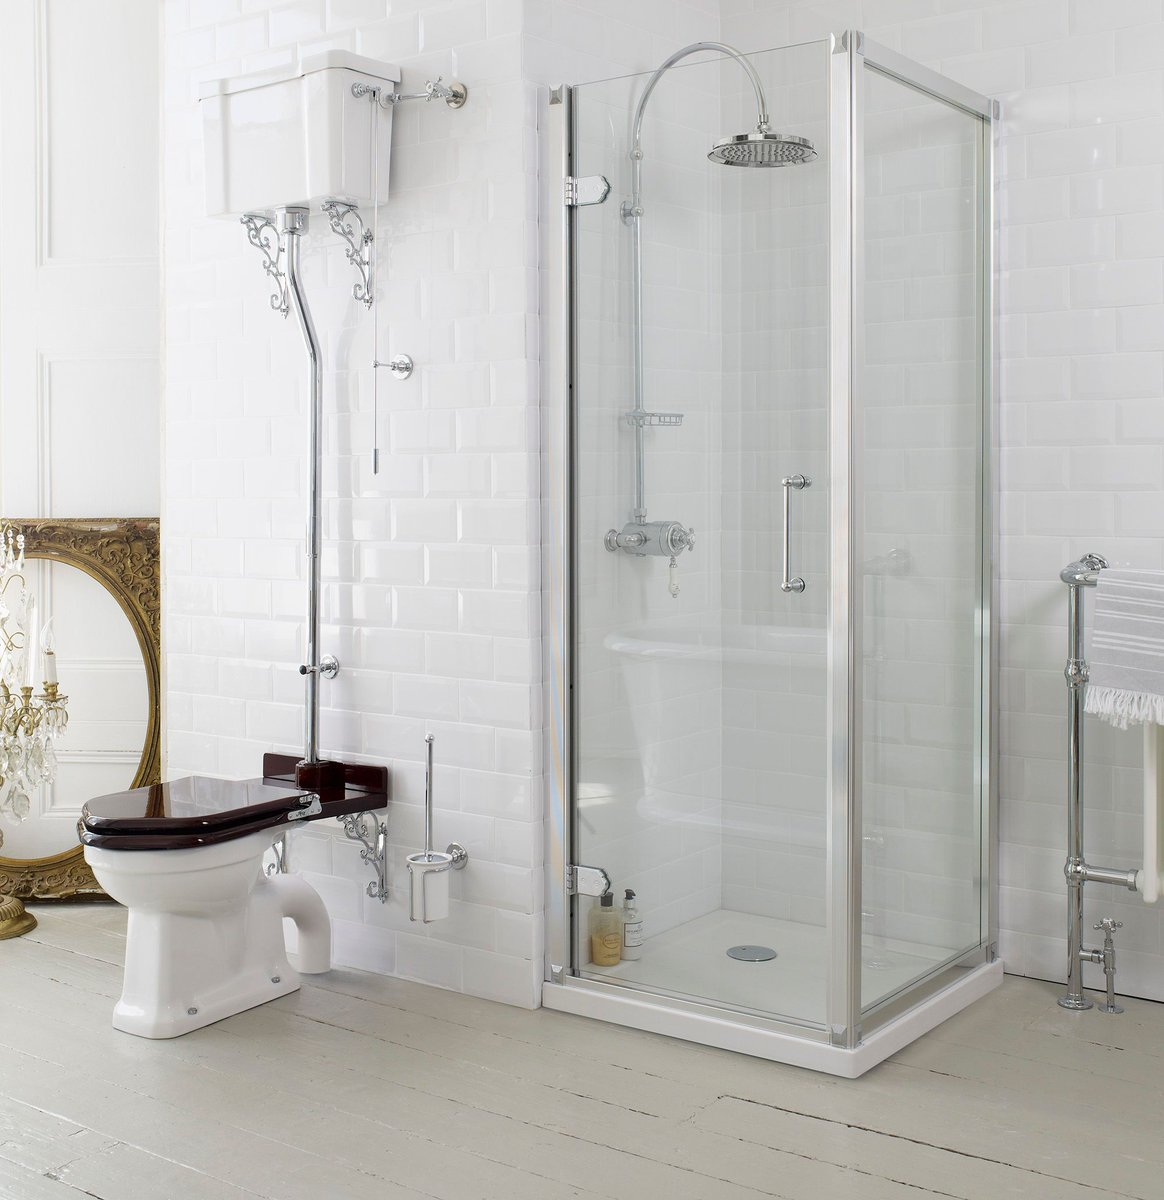 Super Sale coming soon! Save up to 50% off RRP on some of our biggest well know brands... Watch this space....  #tecaztrends #bathroomdesign <br>http://pic.twitter.com/nrAx6lF9zx